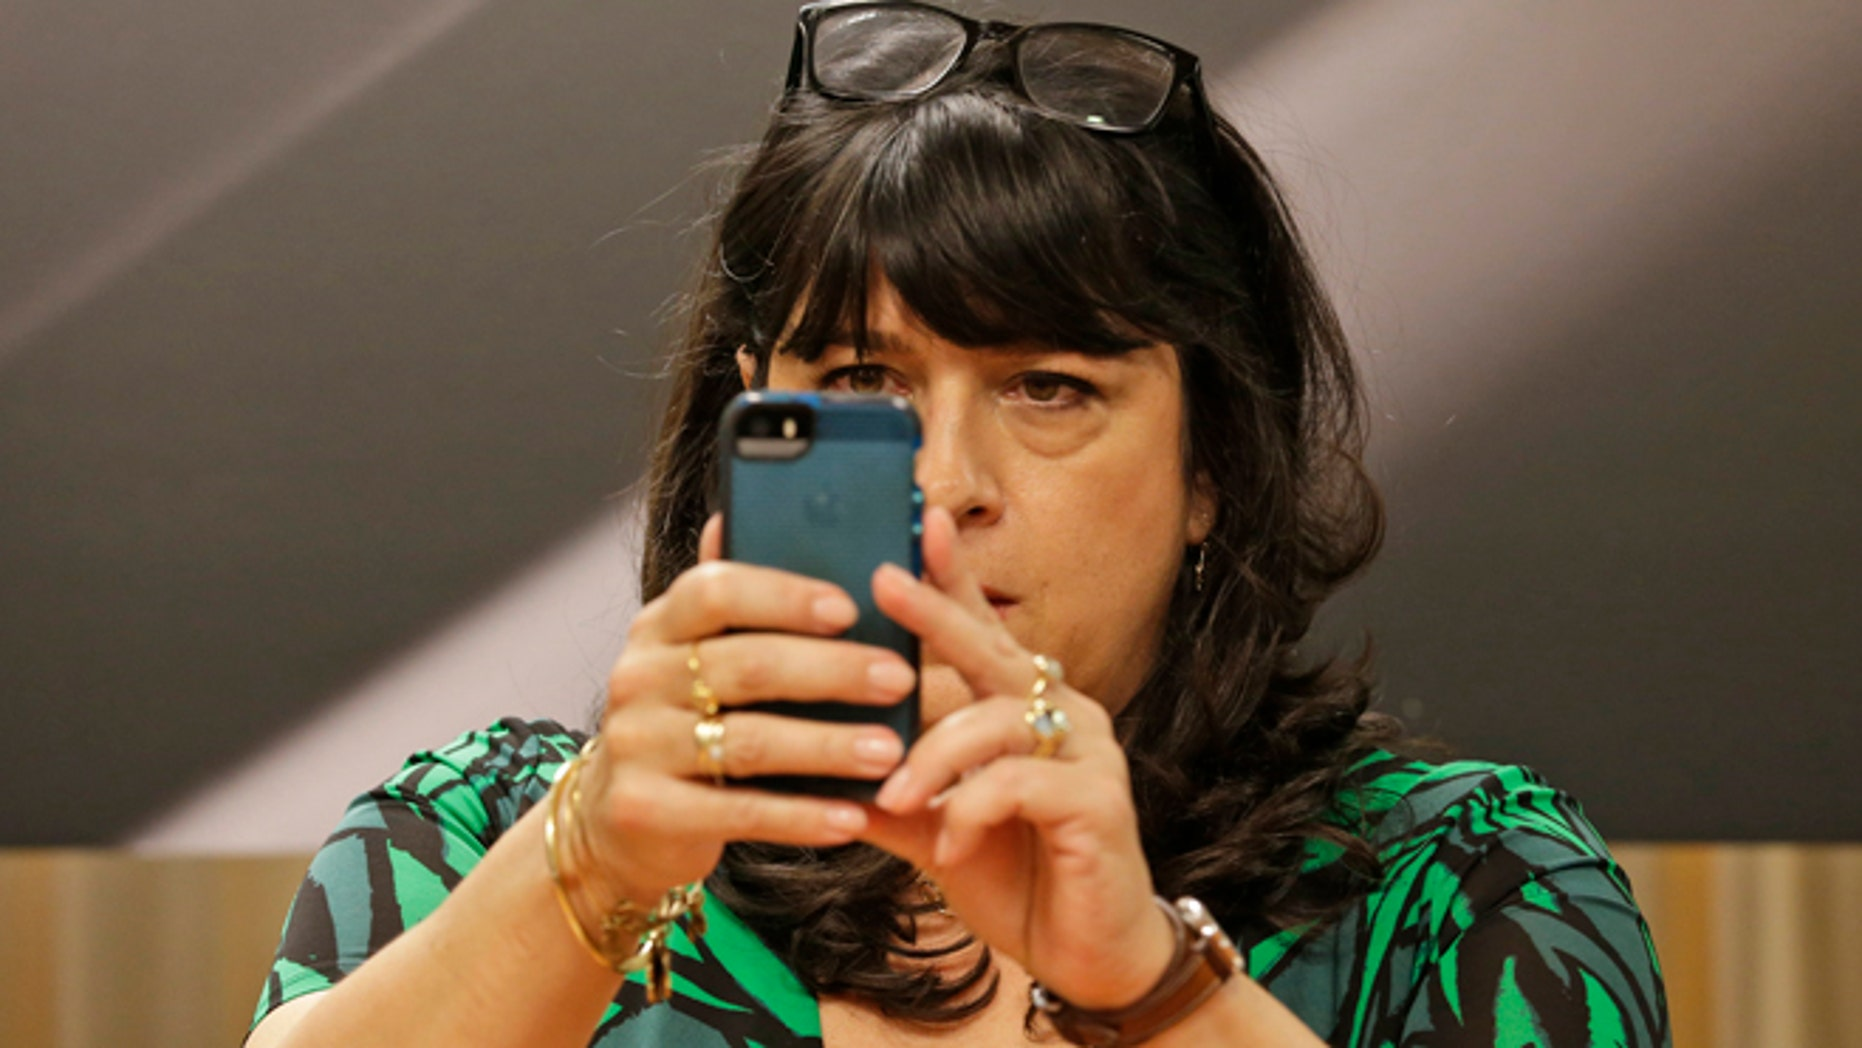 Author EL James takes a picture of photographers before signing her new book, âGrey,â at a Barnes and Noble bookstore in New York, Thursday, June 18, 2015.  (AP Photo/Mary Altaffer)